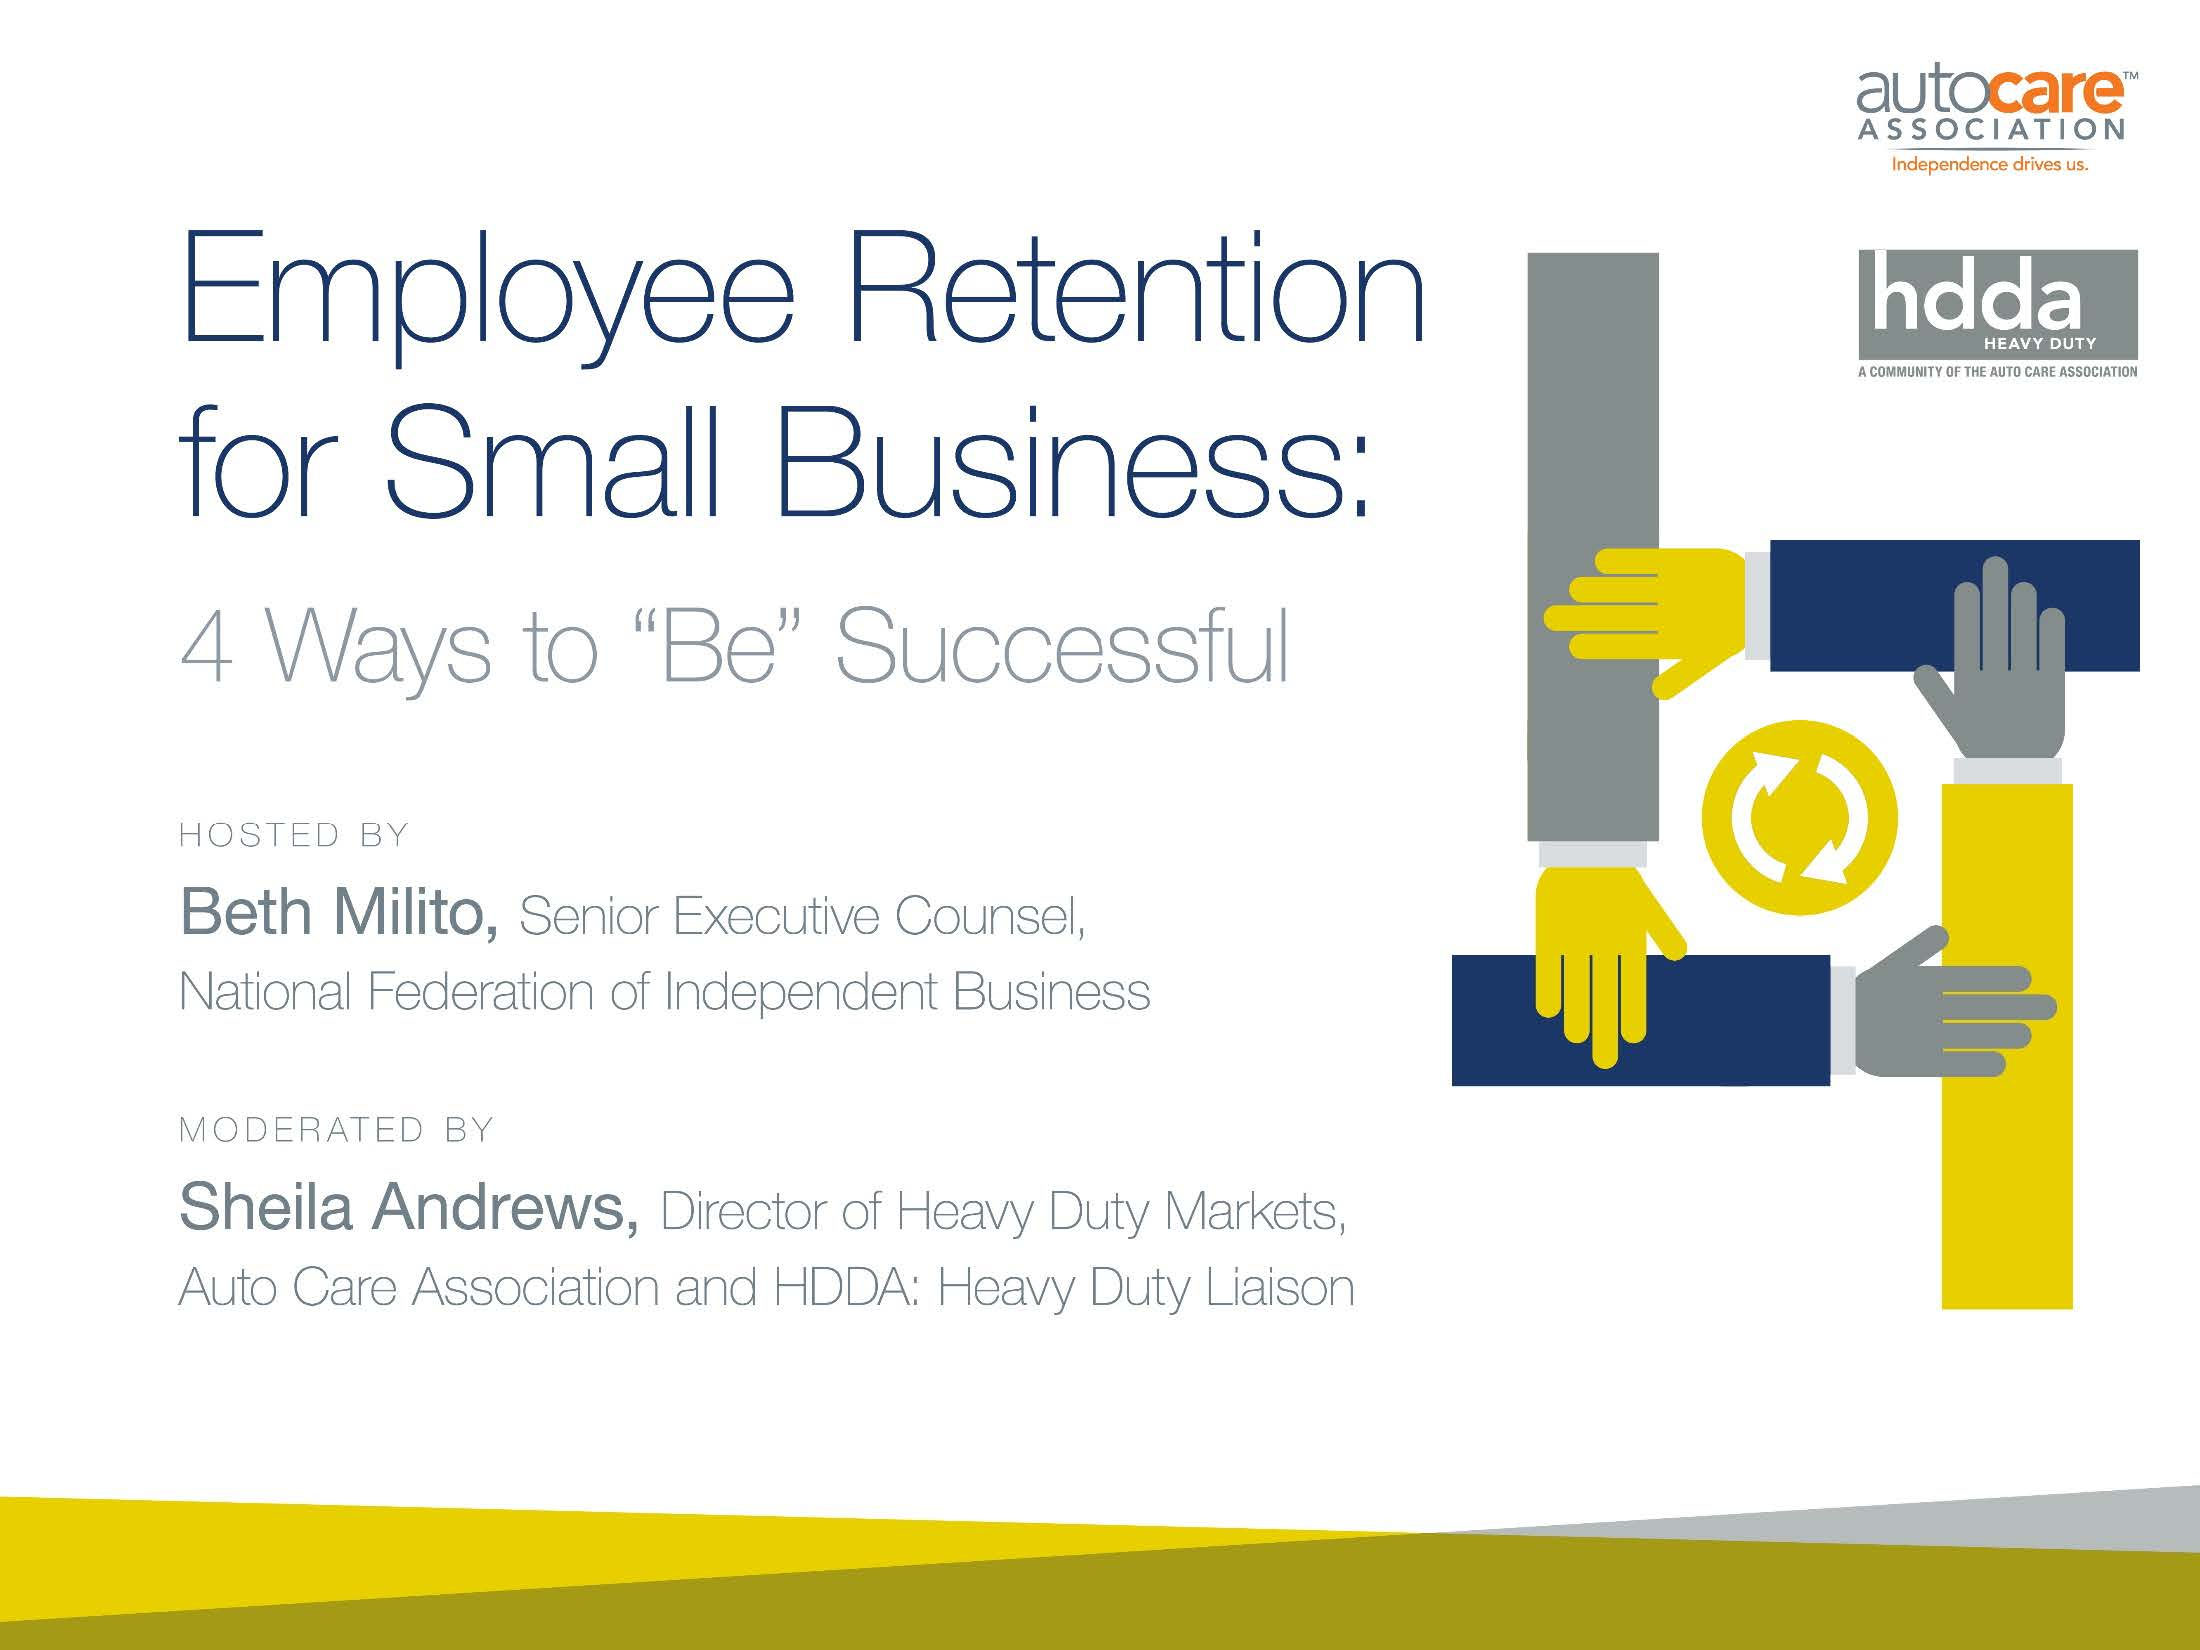 Employee Retention for Small Business: 4 Ways to